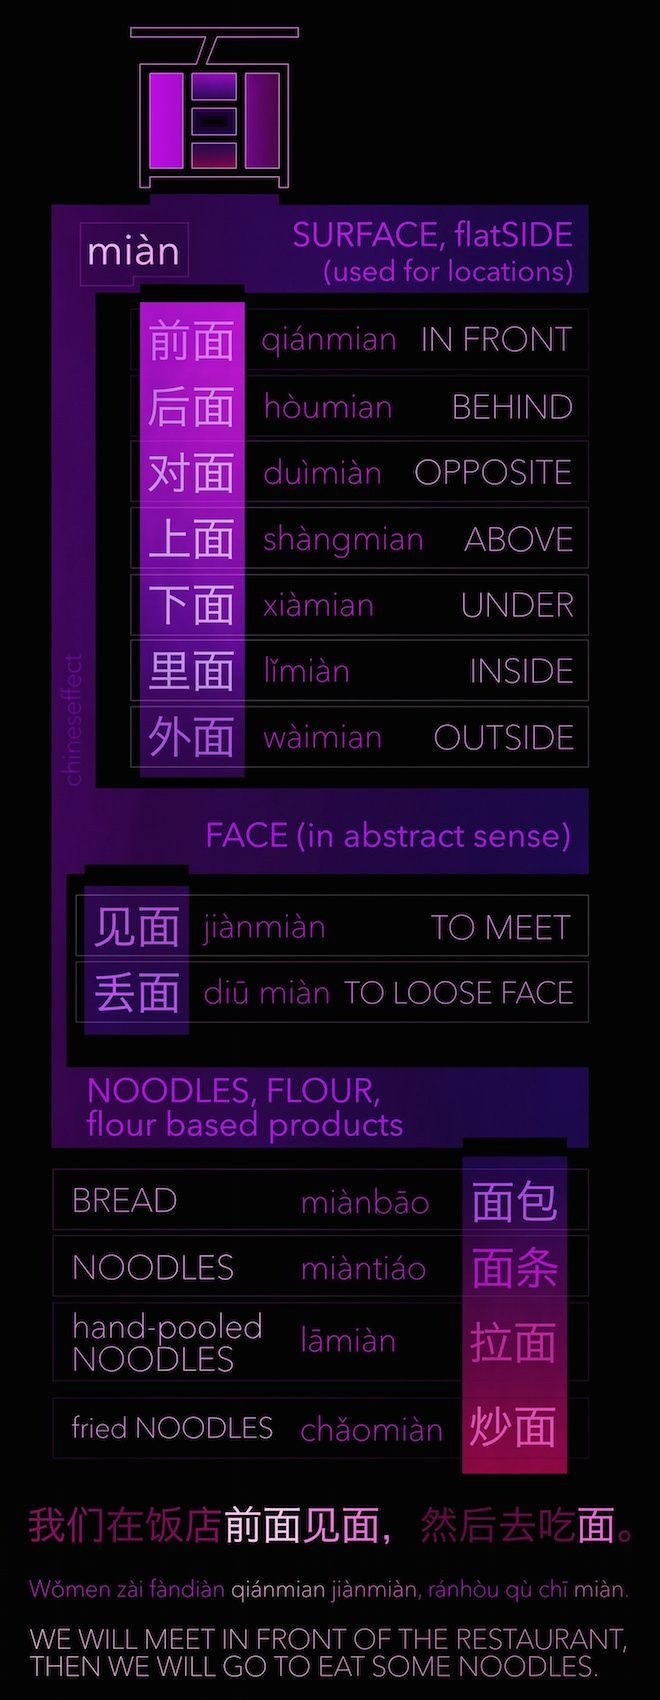 Grammar3 面 miàn means SURFACE, something FLAT. Faces of Chinese people are quite flat as their noses aren't so dominant, so it also means FACE (in abstract sense). Why does it also mean NOODLES? To make noodles, you need to distribute a dough over...